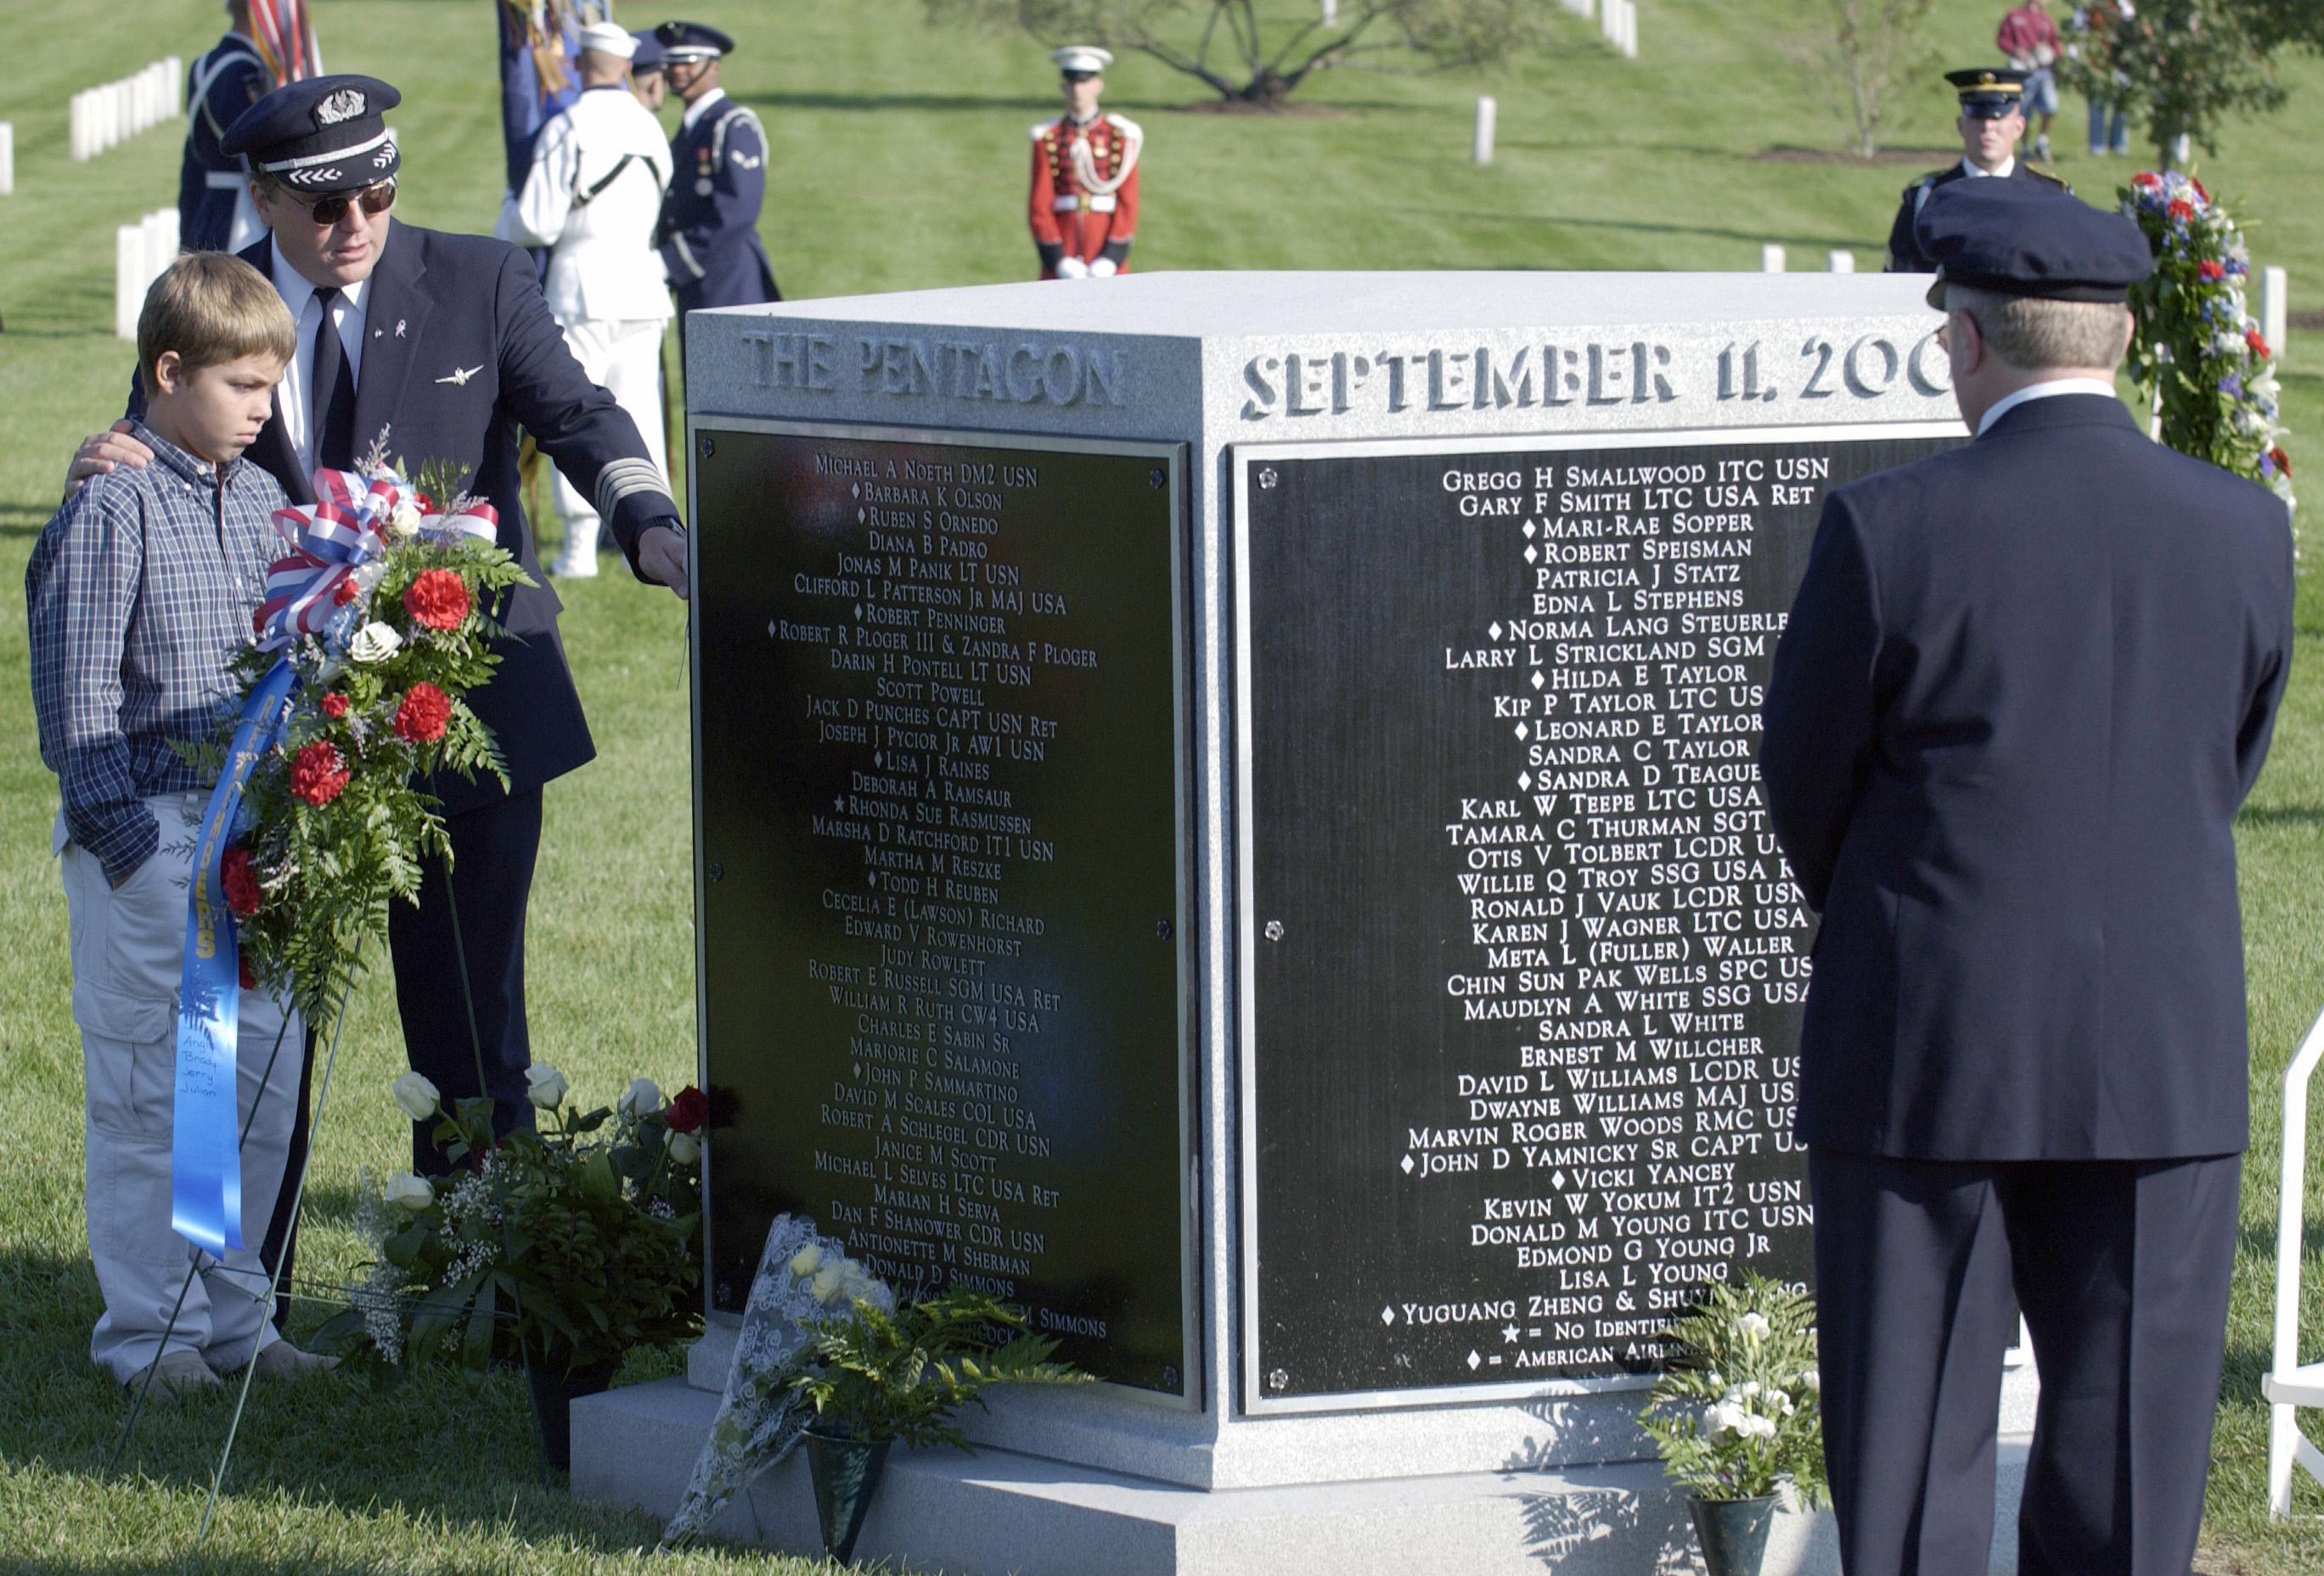 September 11 at Arlington Cemetery